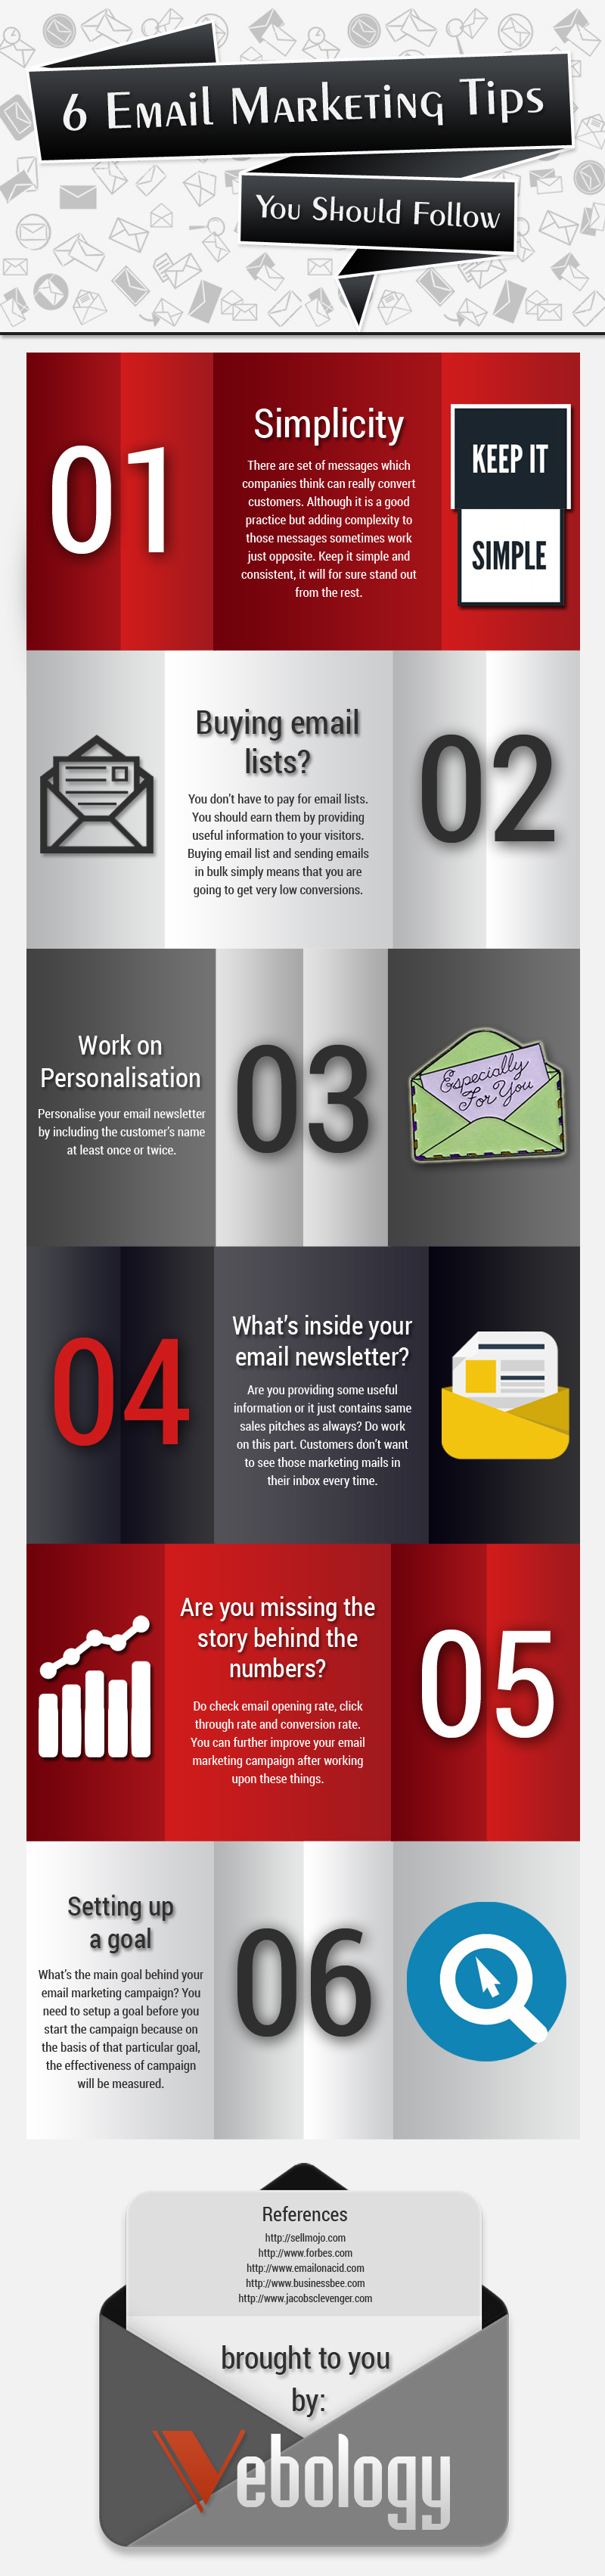 6 Email Marketing Tips You Should Follow - Image 1